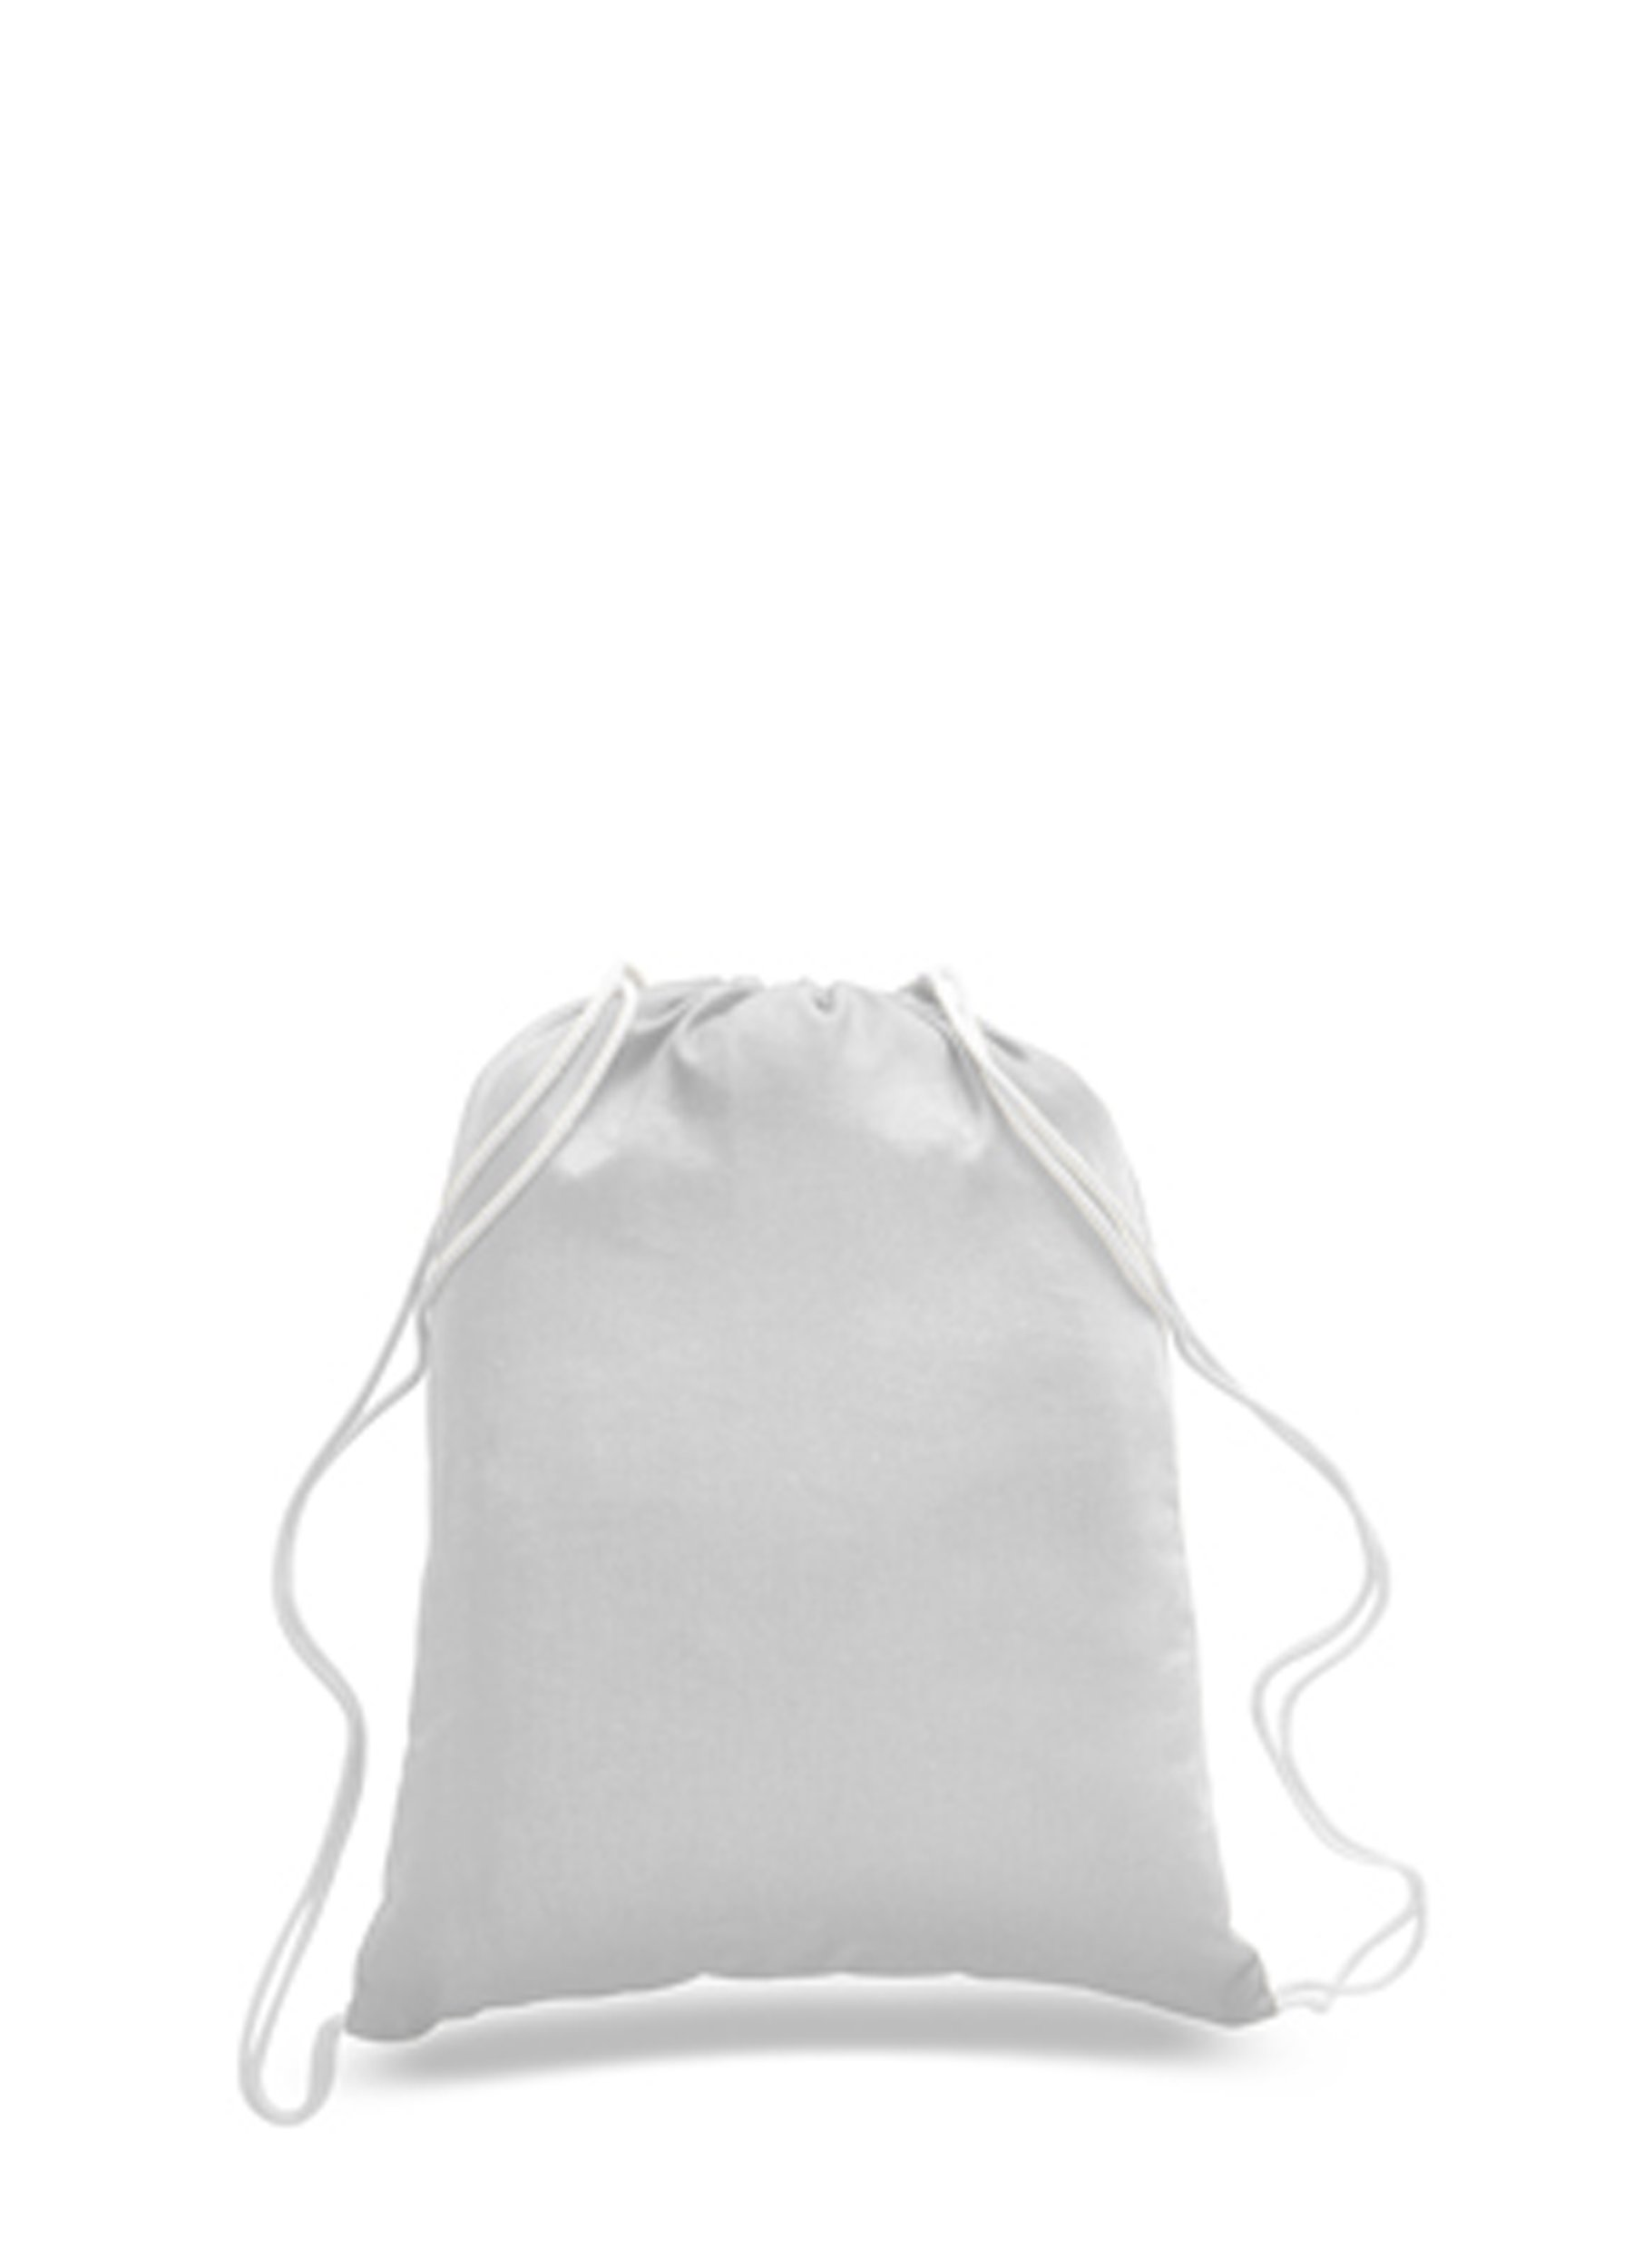 24 Pack Wholesale Apparel Bags 100% Cotton Reusable Eco Friendly Gym Tote Bags Drawstring Bags in Bulk Promotional Give away Quality Drawstring Backpack Bags Cinch Bags Sack Packs (White)